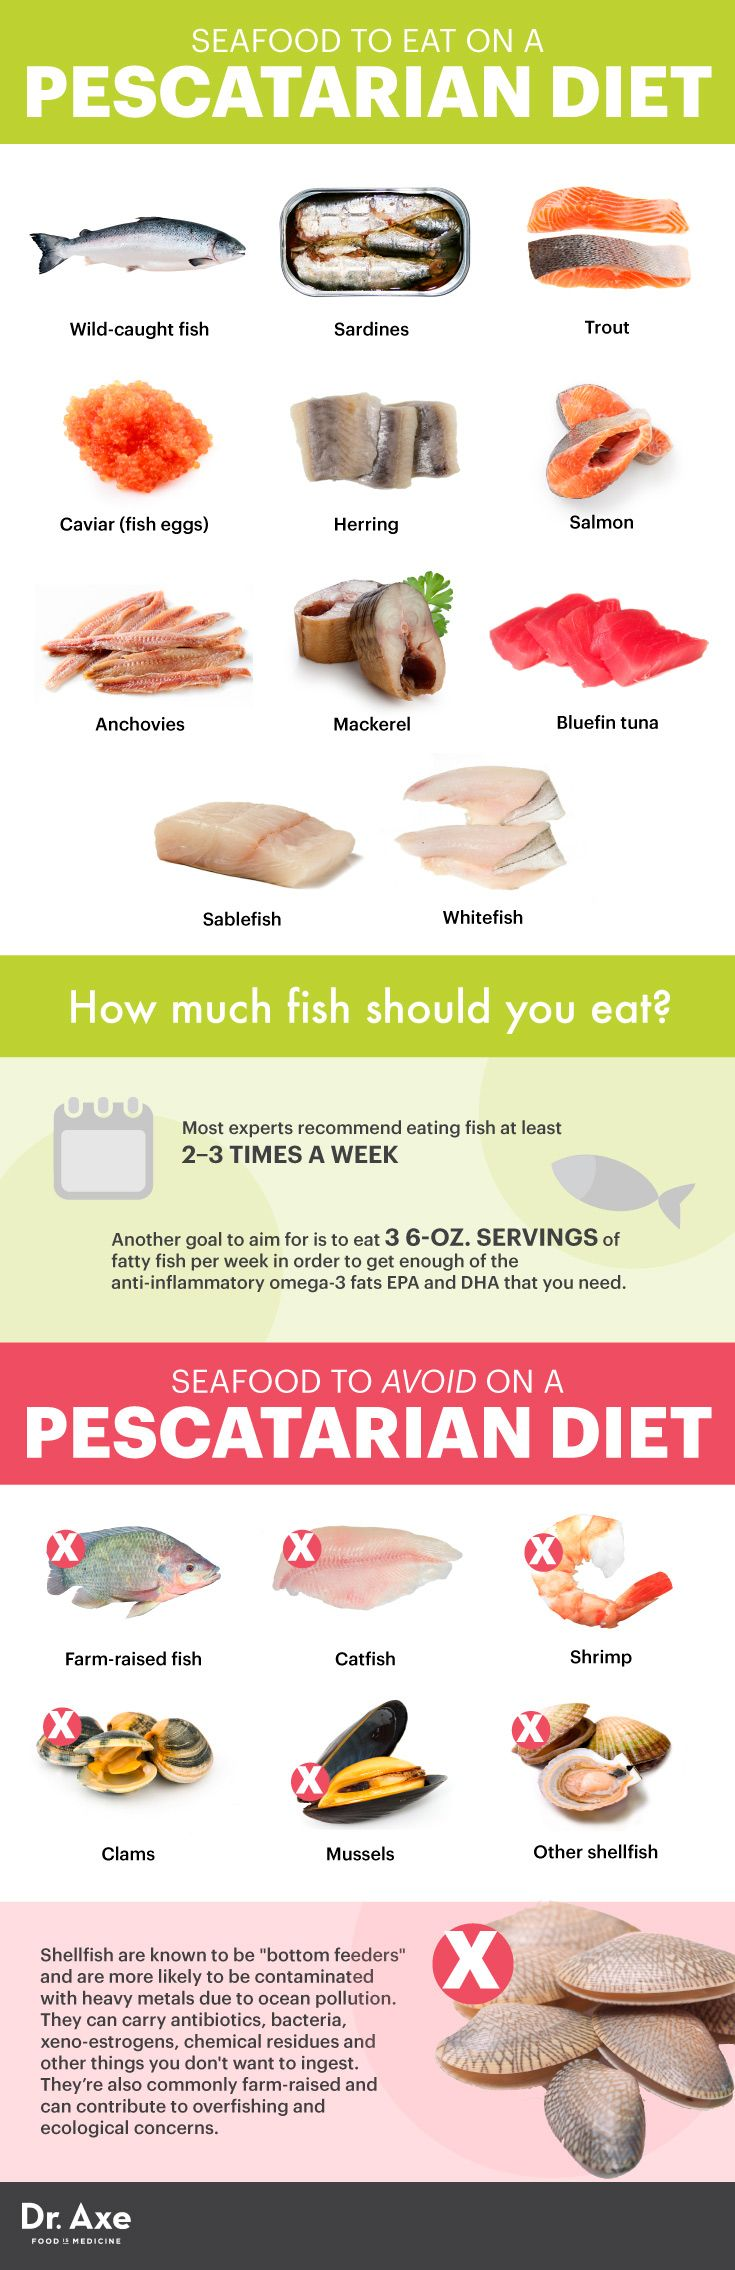 Pescatarian seafood to eat - Dr. Axe http://www.draxe.com #health #holistic #natural #detox